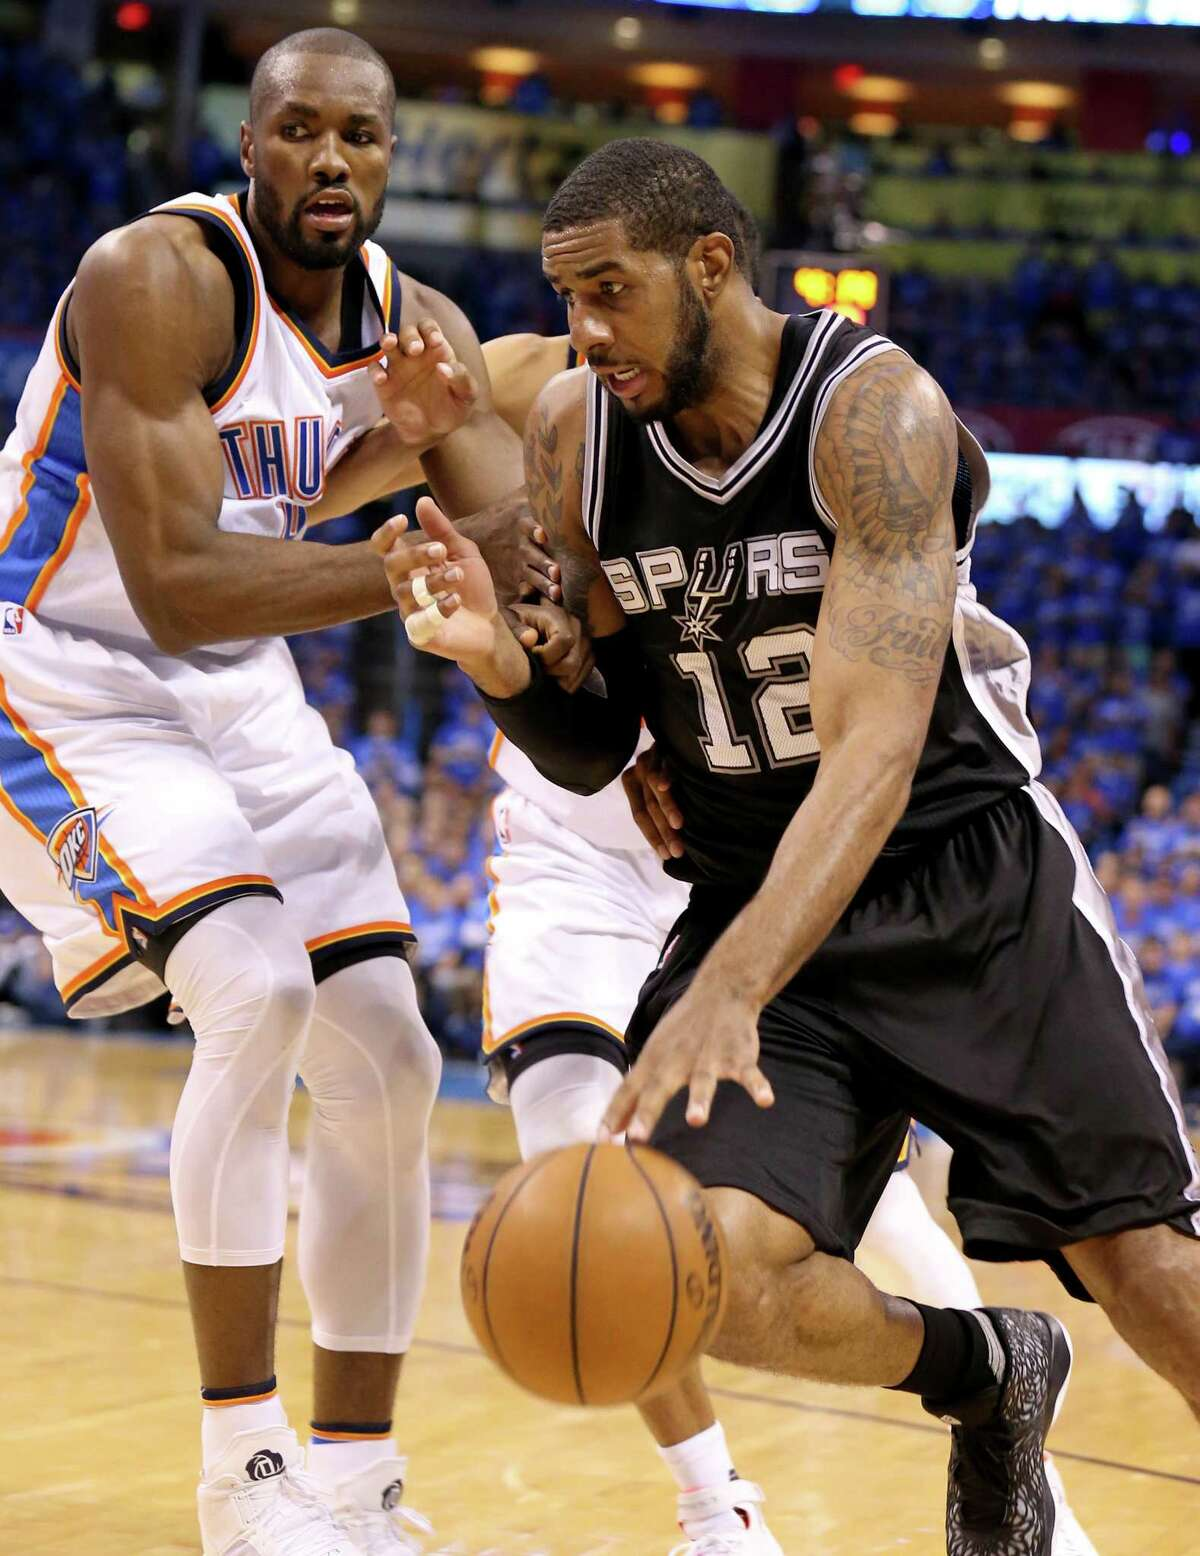 San Antonio Spurs' LaMarcus Aldridge looks for room around Oklahoma City Thunder's Serge Ibaka during first half action of Game 6 in the Western Conference semifinals Thursday May 12, 2016 at Chesapeake Energy Arena in Oklahoma City, Oklahoma.